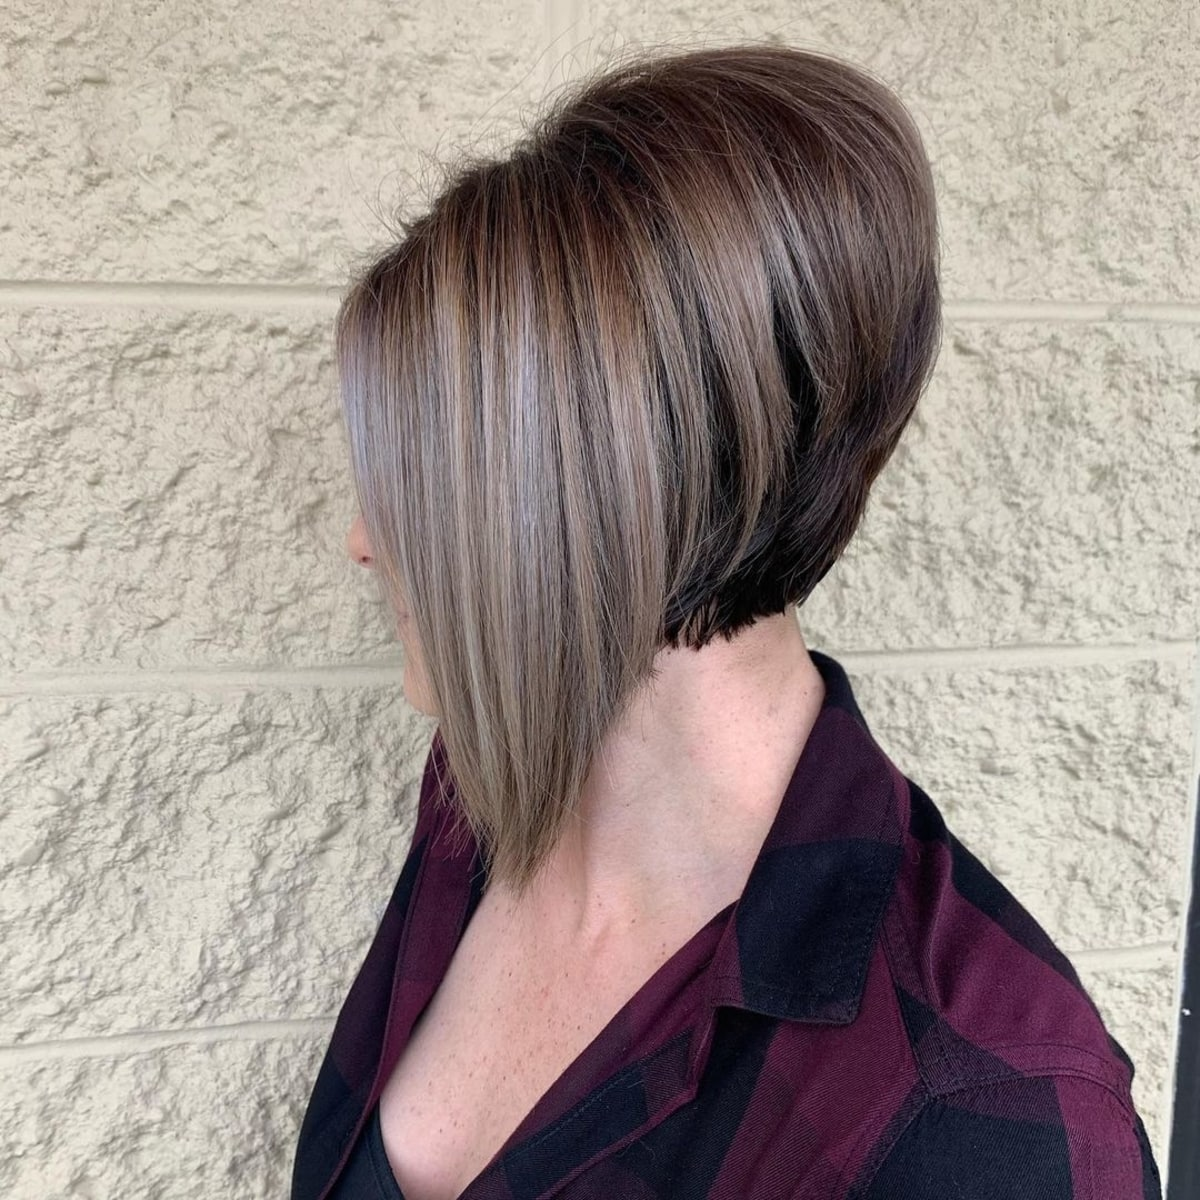 The cutest short stacked bob hairstyle